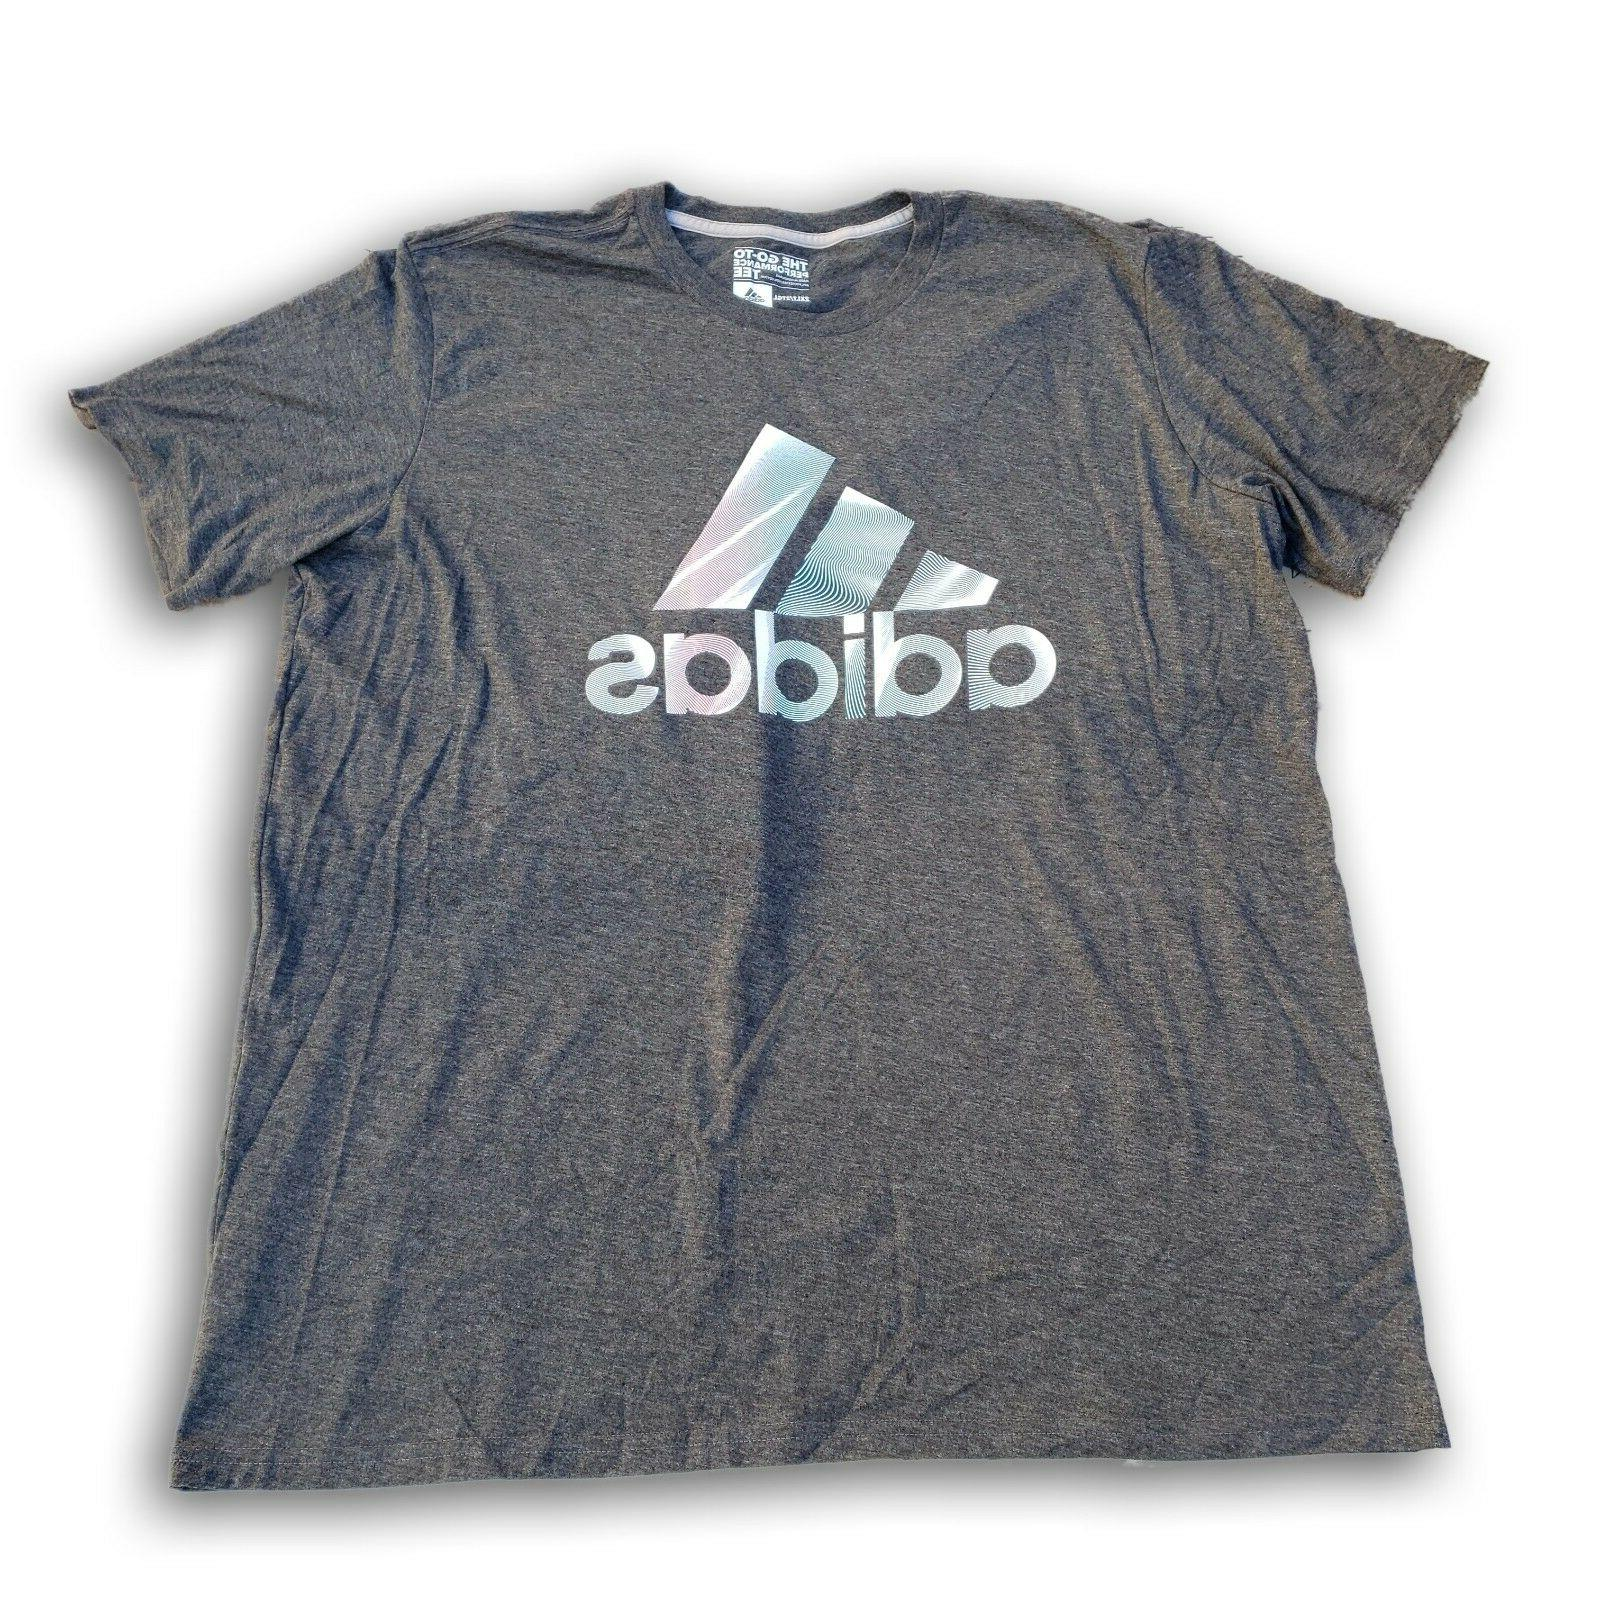 adidas The Go-To Tee Performance Men's Gray T-shirt Authenti